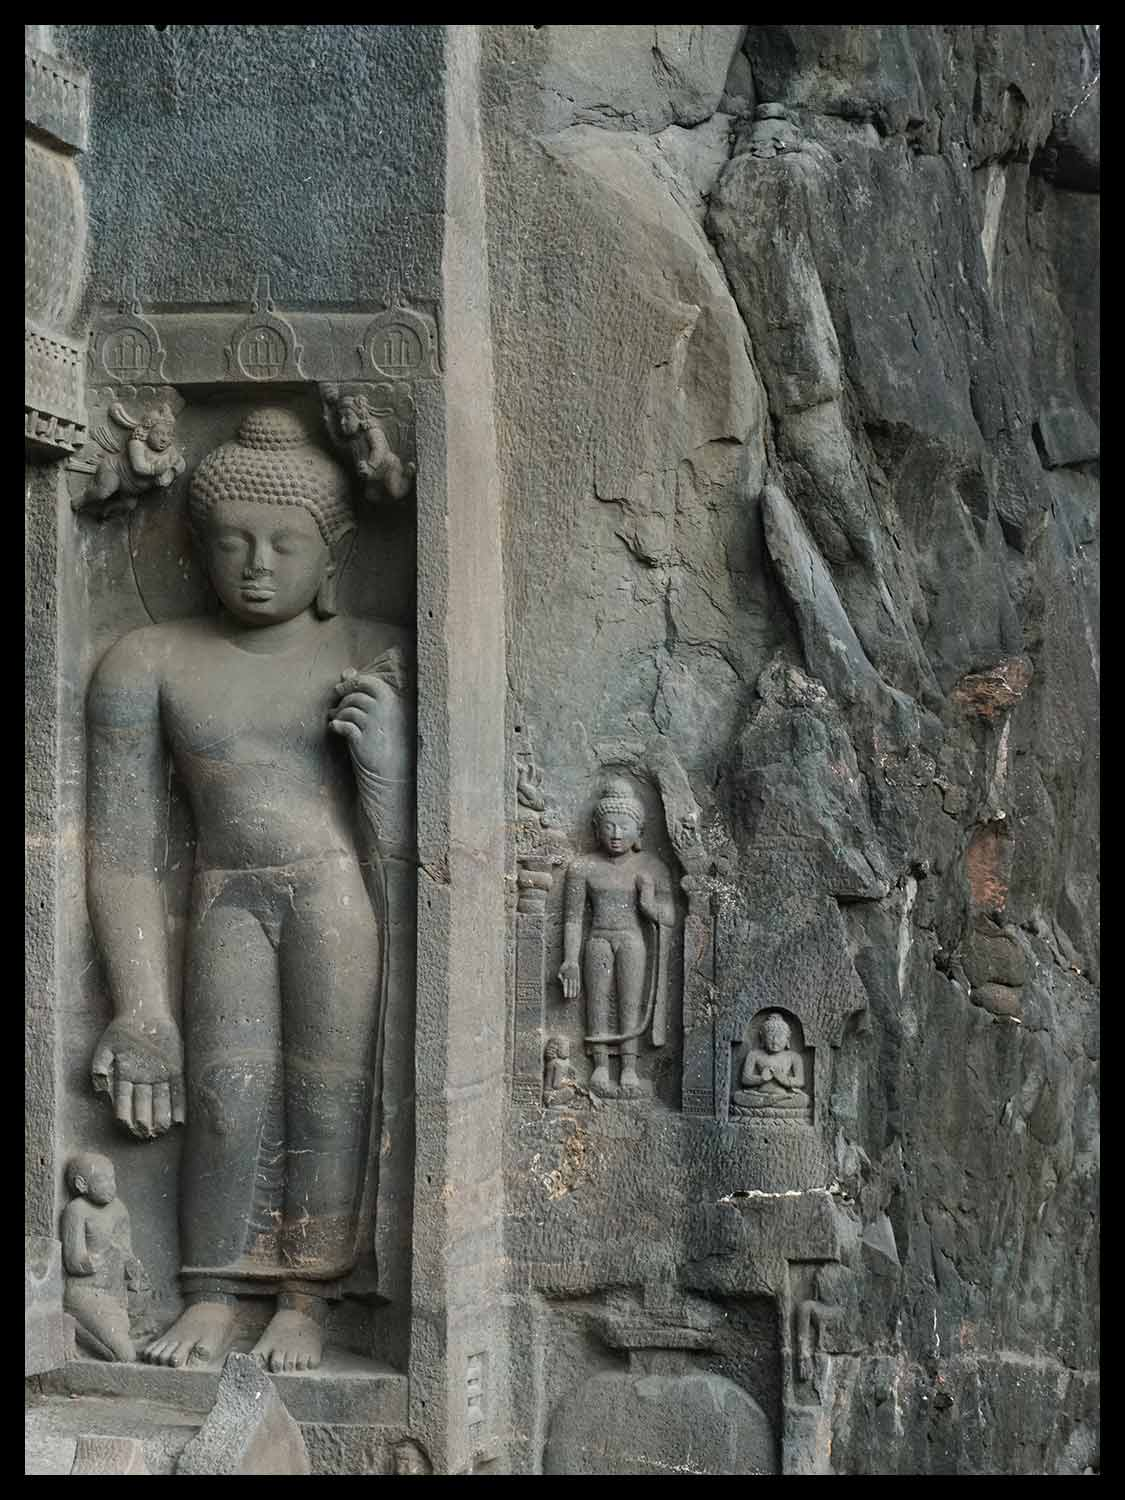 Standing Buddhas, entrance cave 19, Ajanta